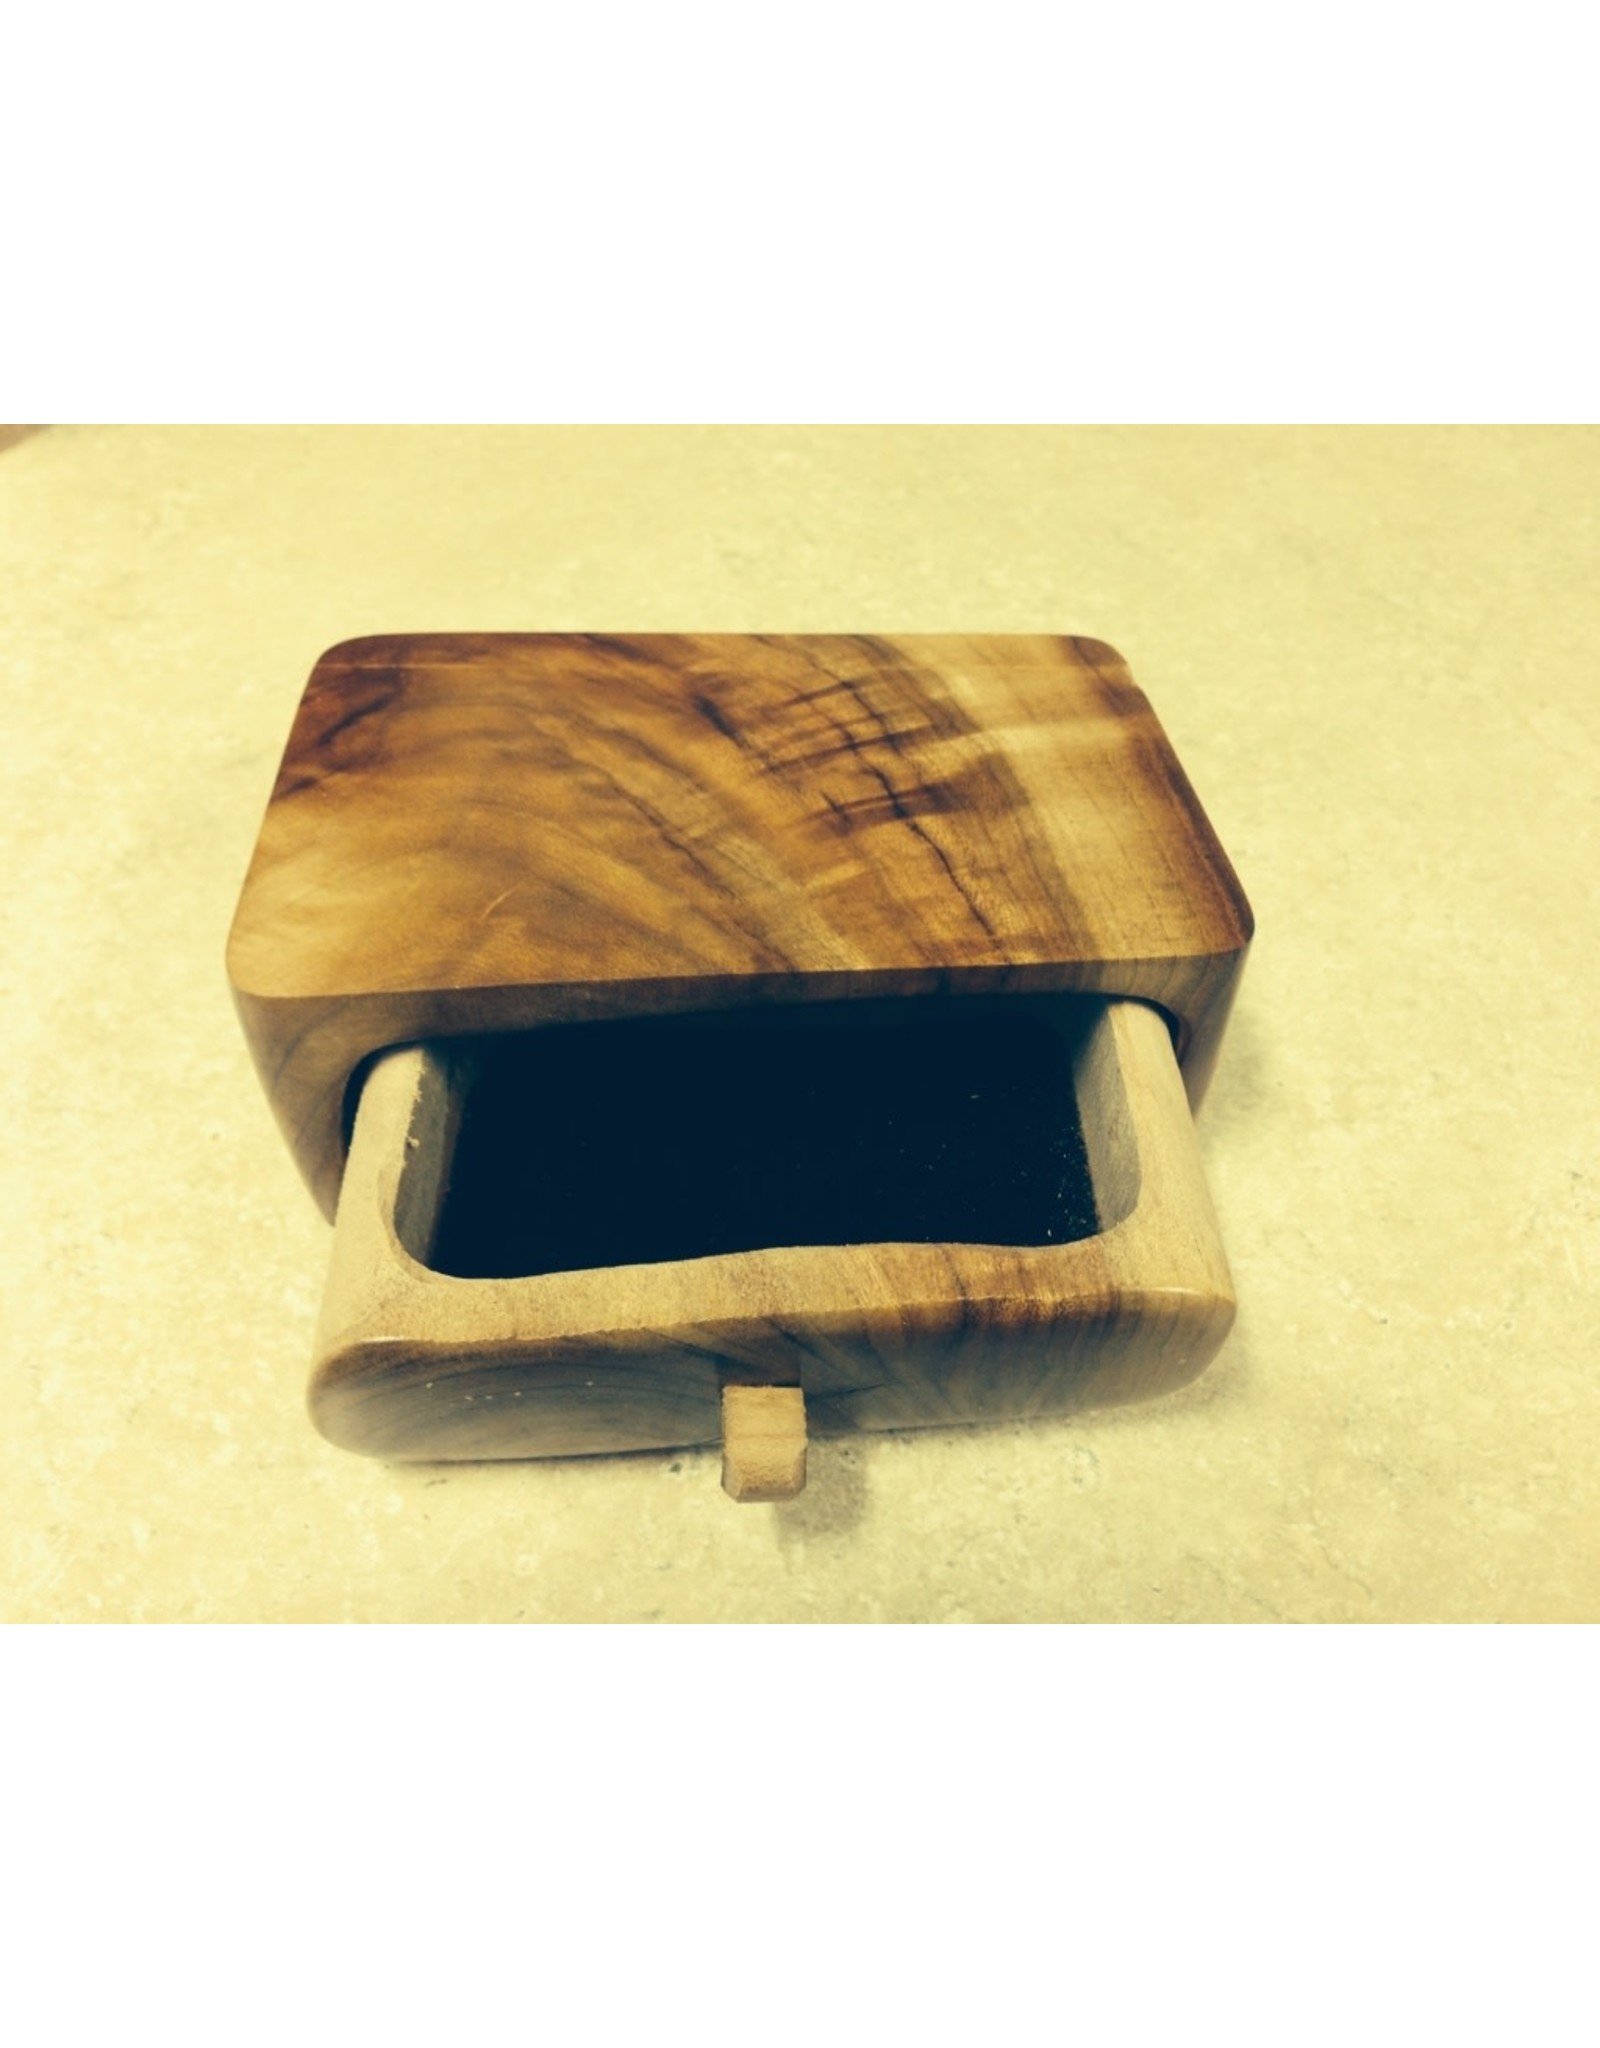 Don Snyder Jewelry Box (Wood, 1 DWR, ASST, Sm, #532)